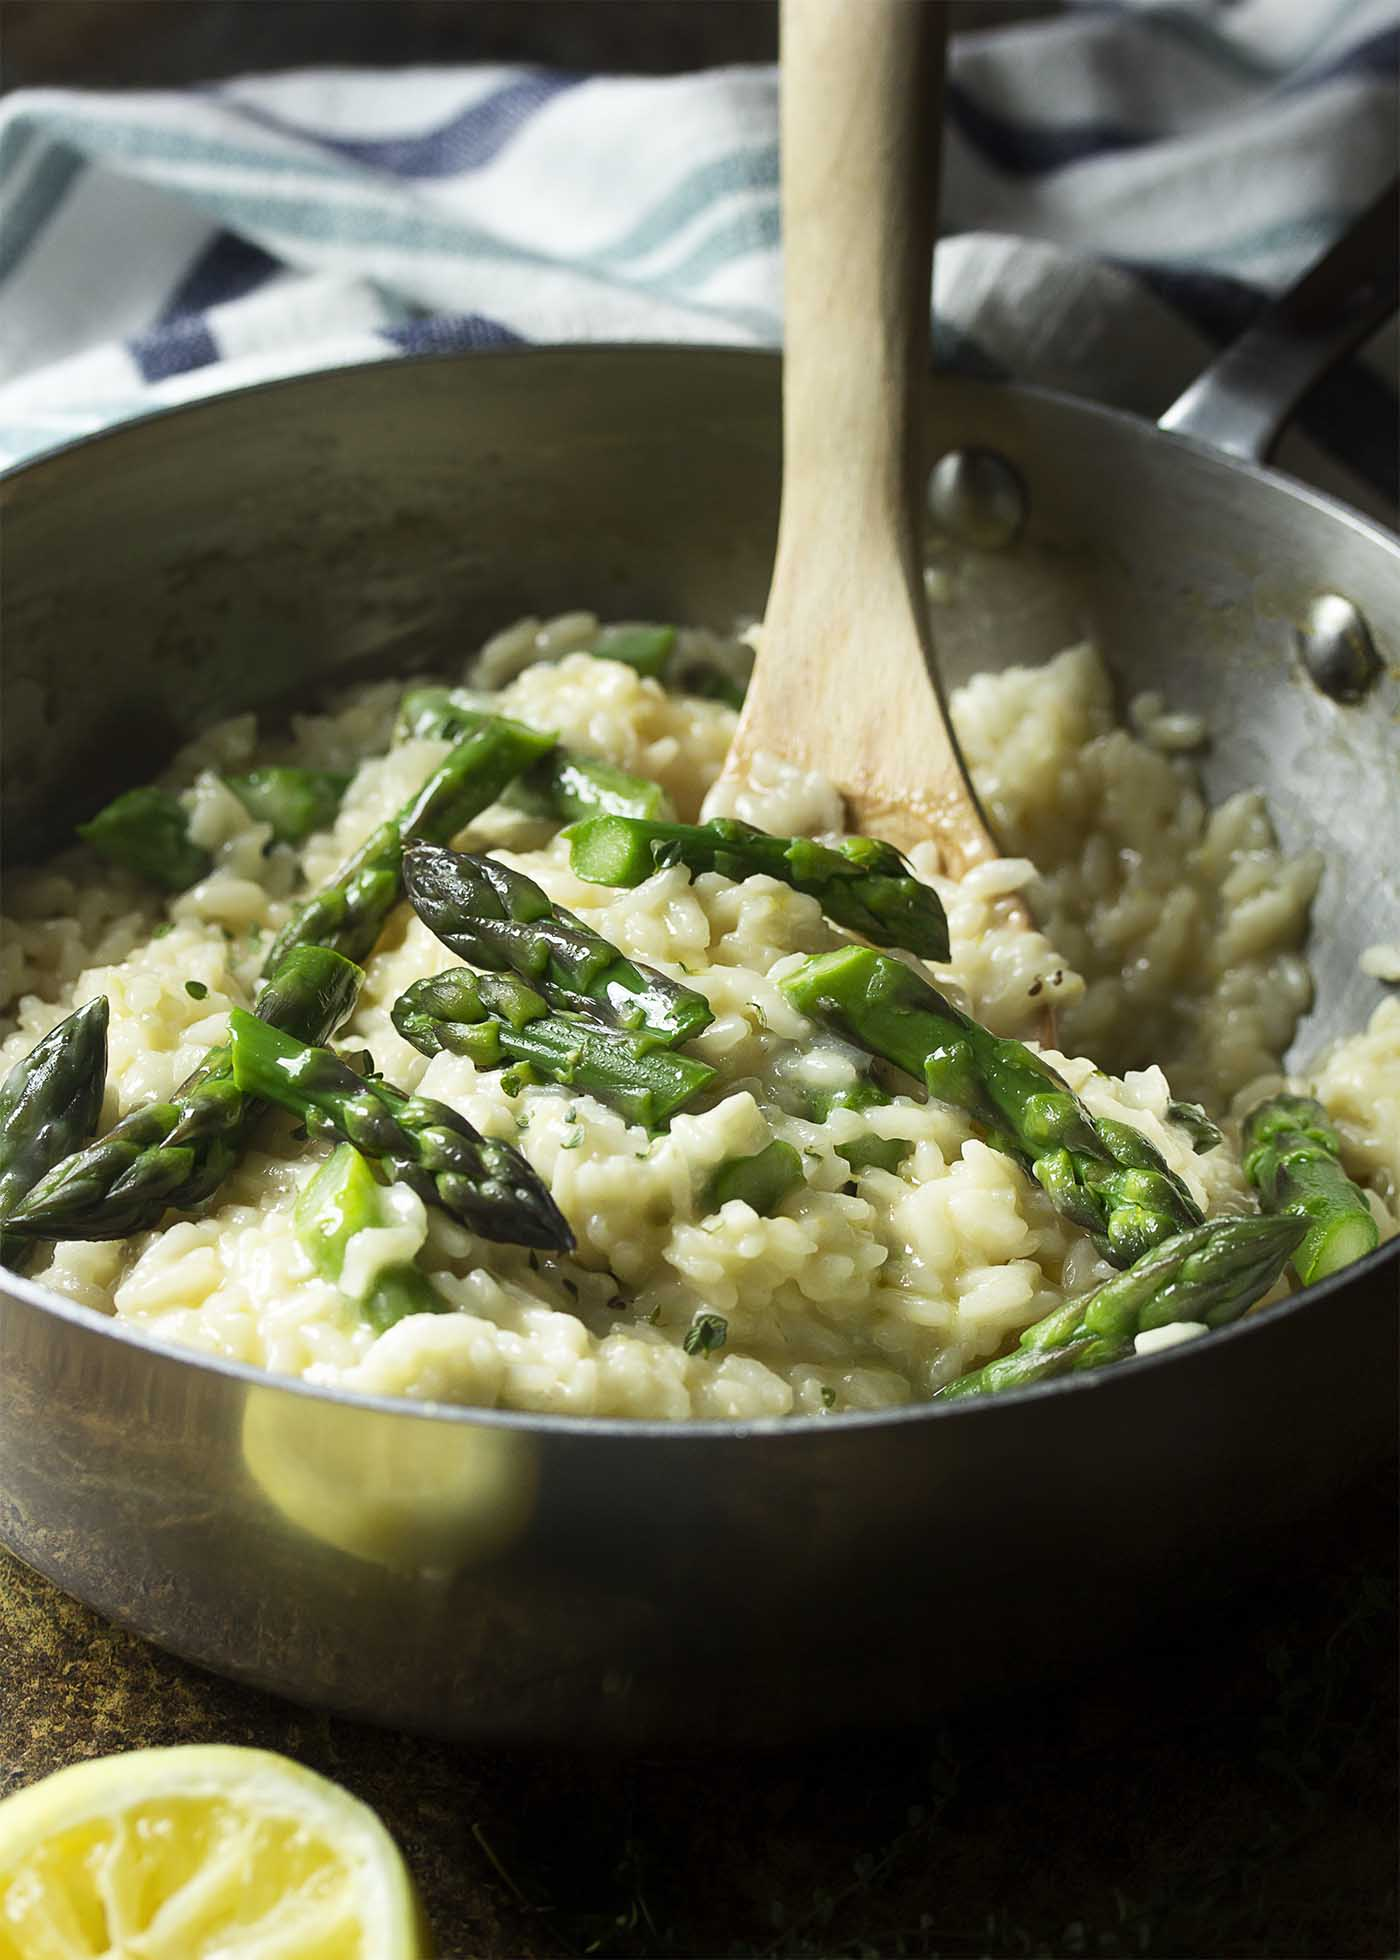 Wooden spoon stirring a finished saucepan of creamy risotto and asparagus.